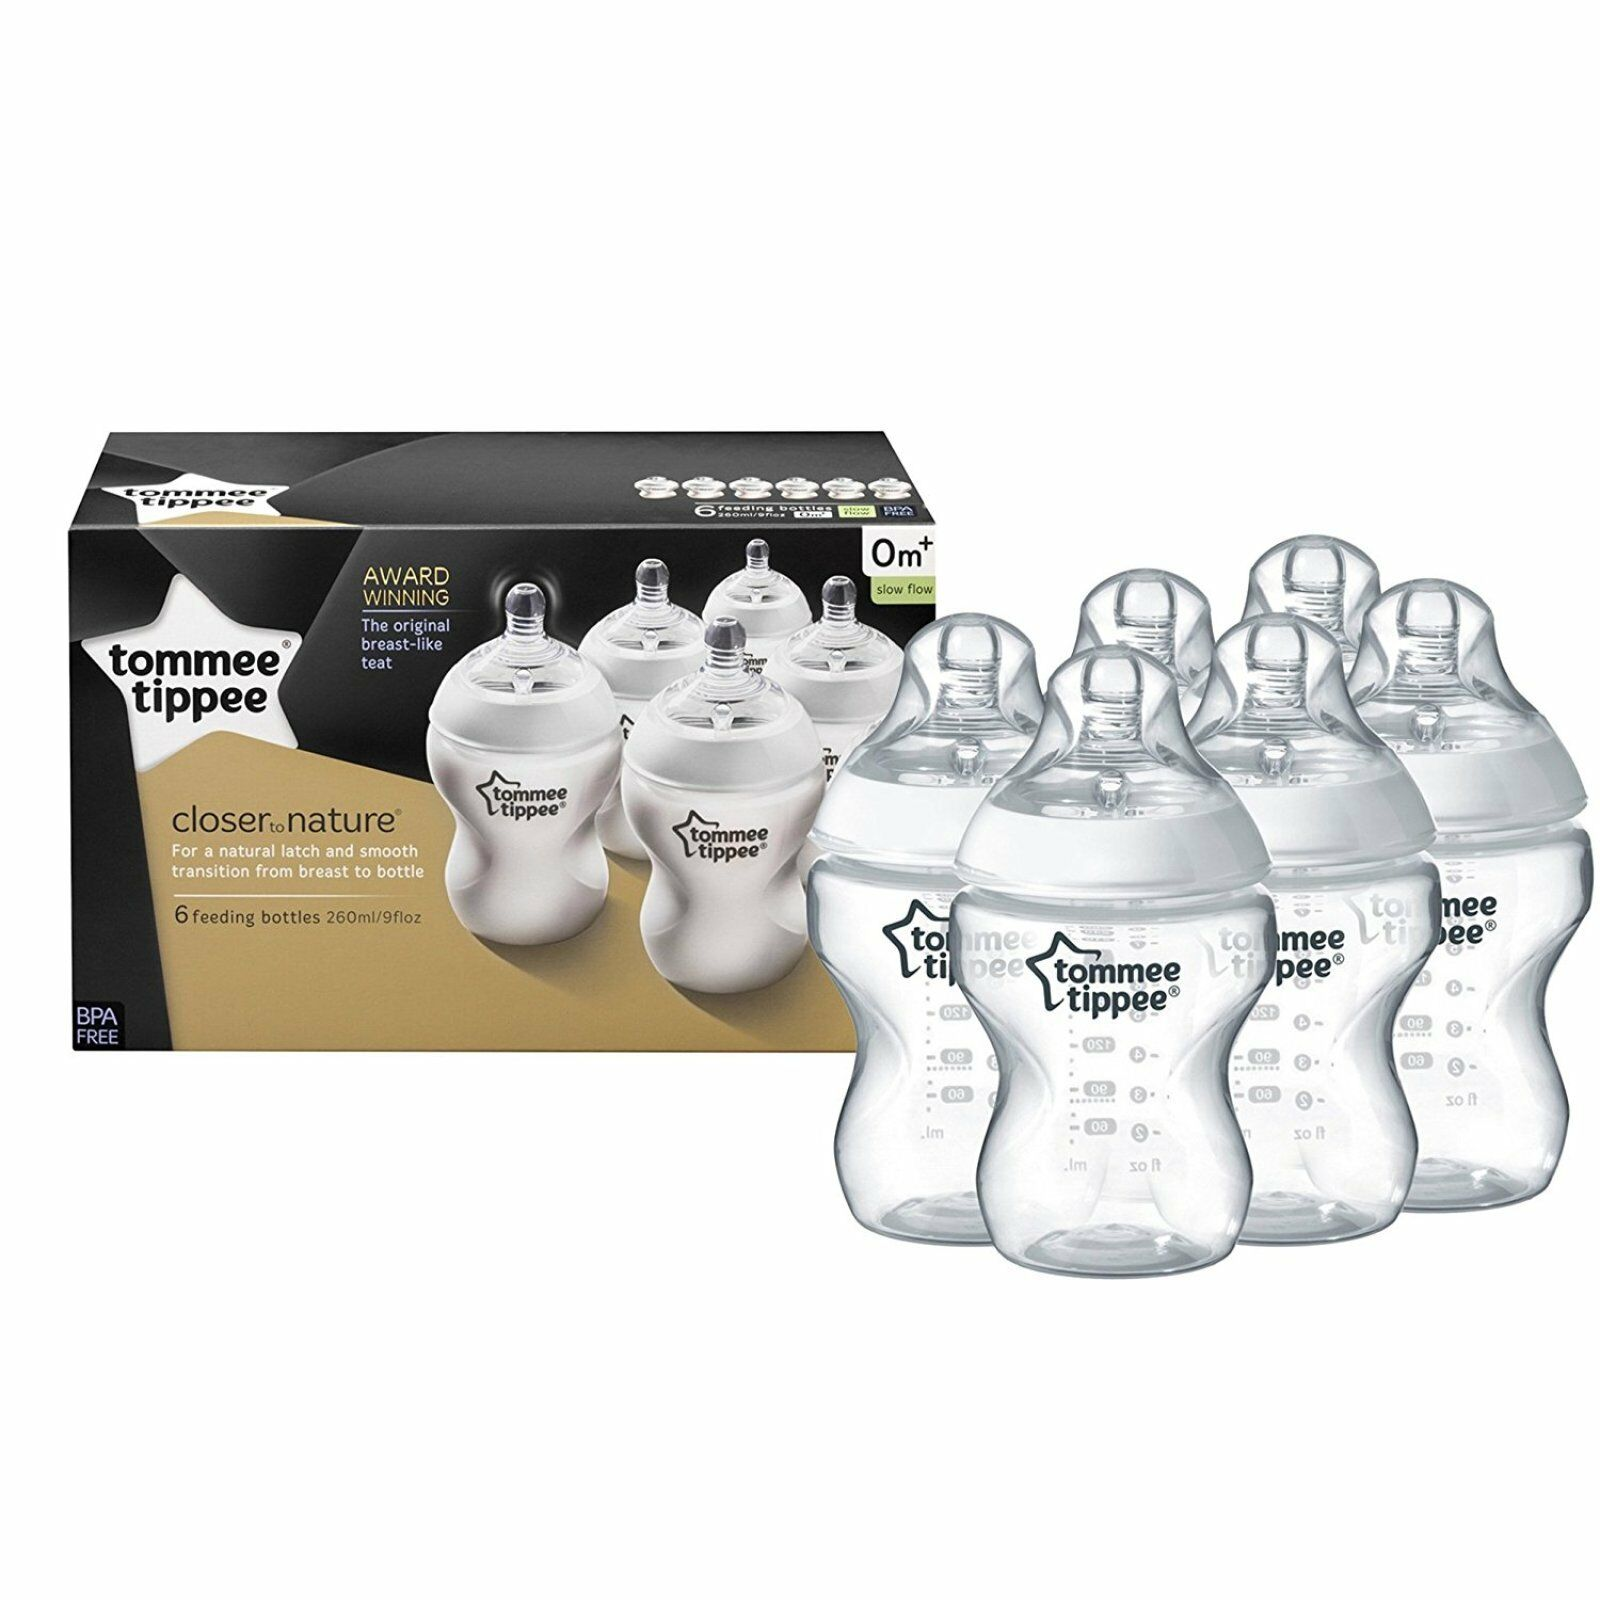 Tommee Tippee Closer to Nature Anti Colic 260ml/9oz Baby Feeding Bottles 6 Pack 8